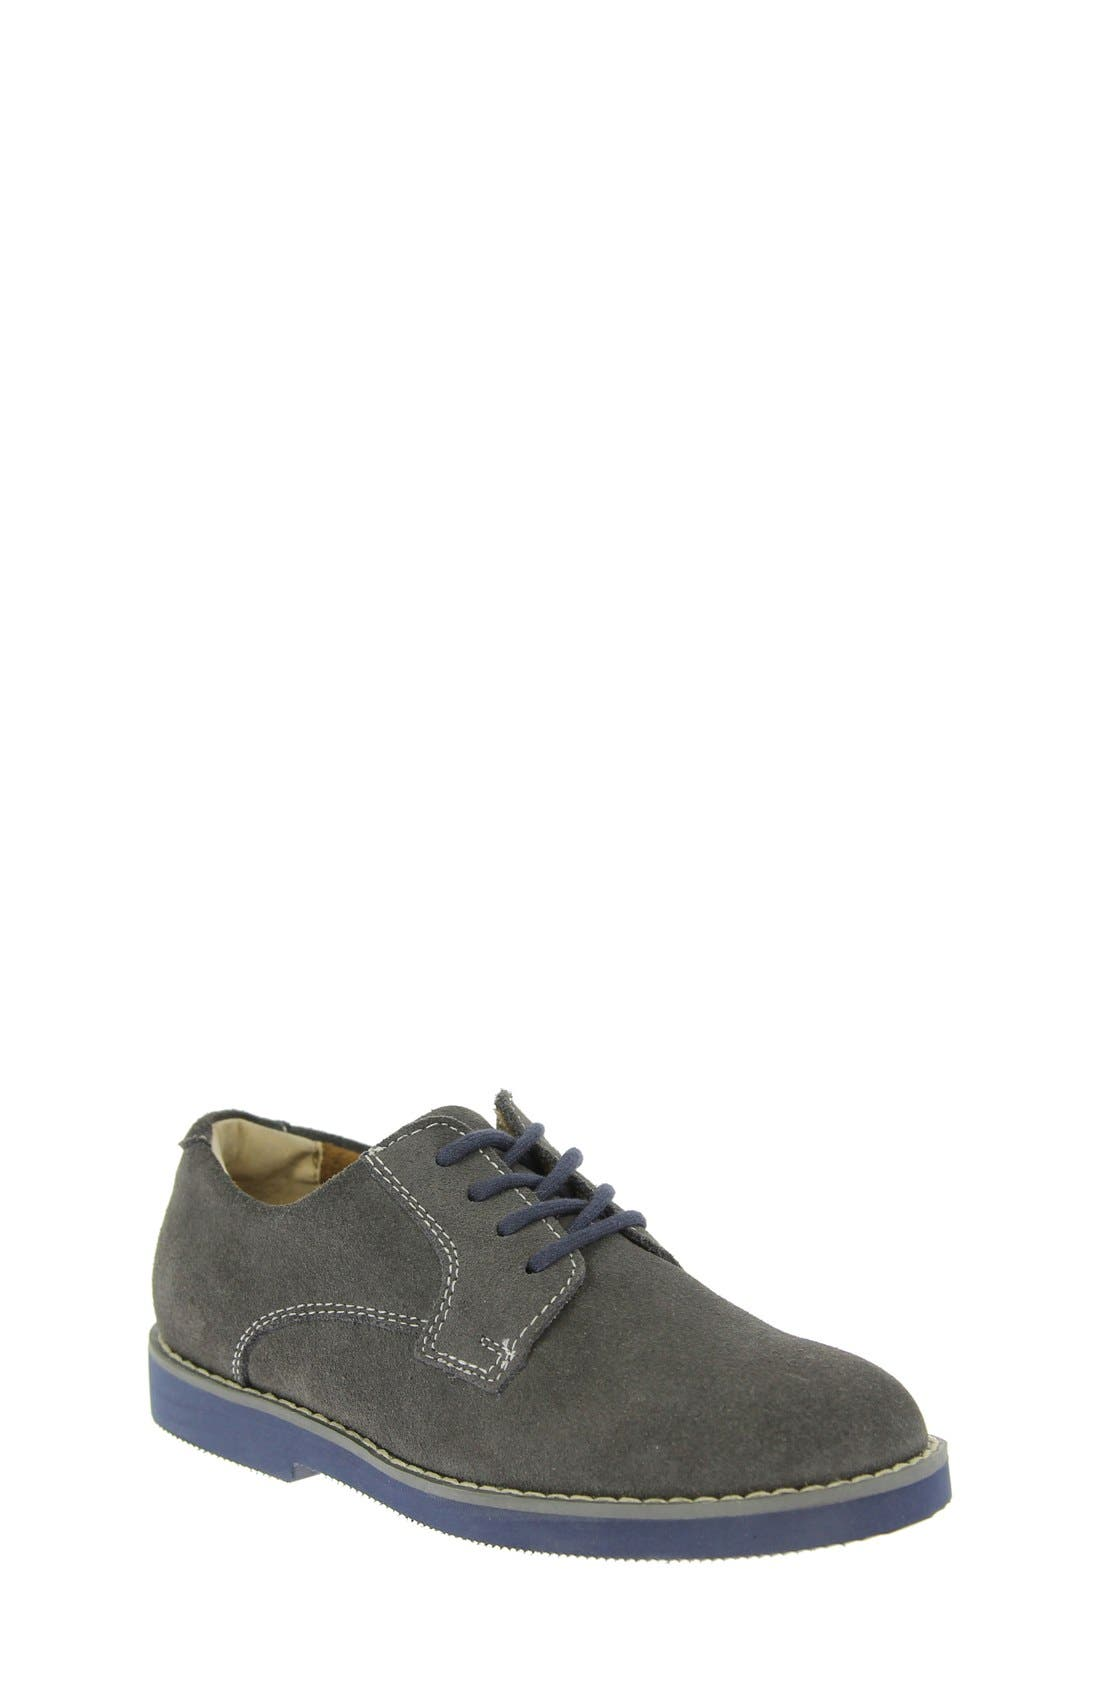 Florsheim Kearny Two Tone Oxford (Toddler, Little Kid & Big Kid)